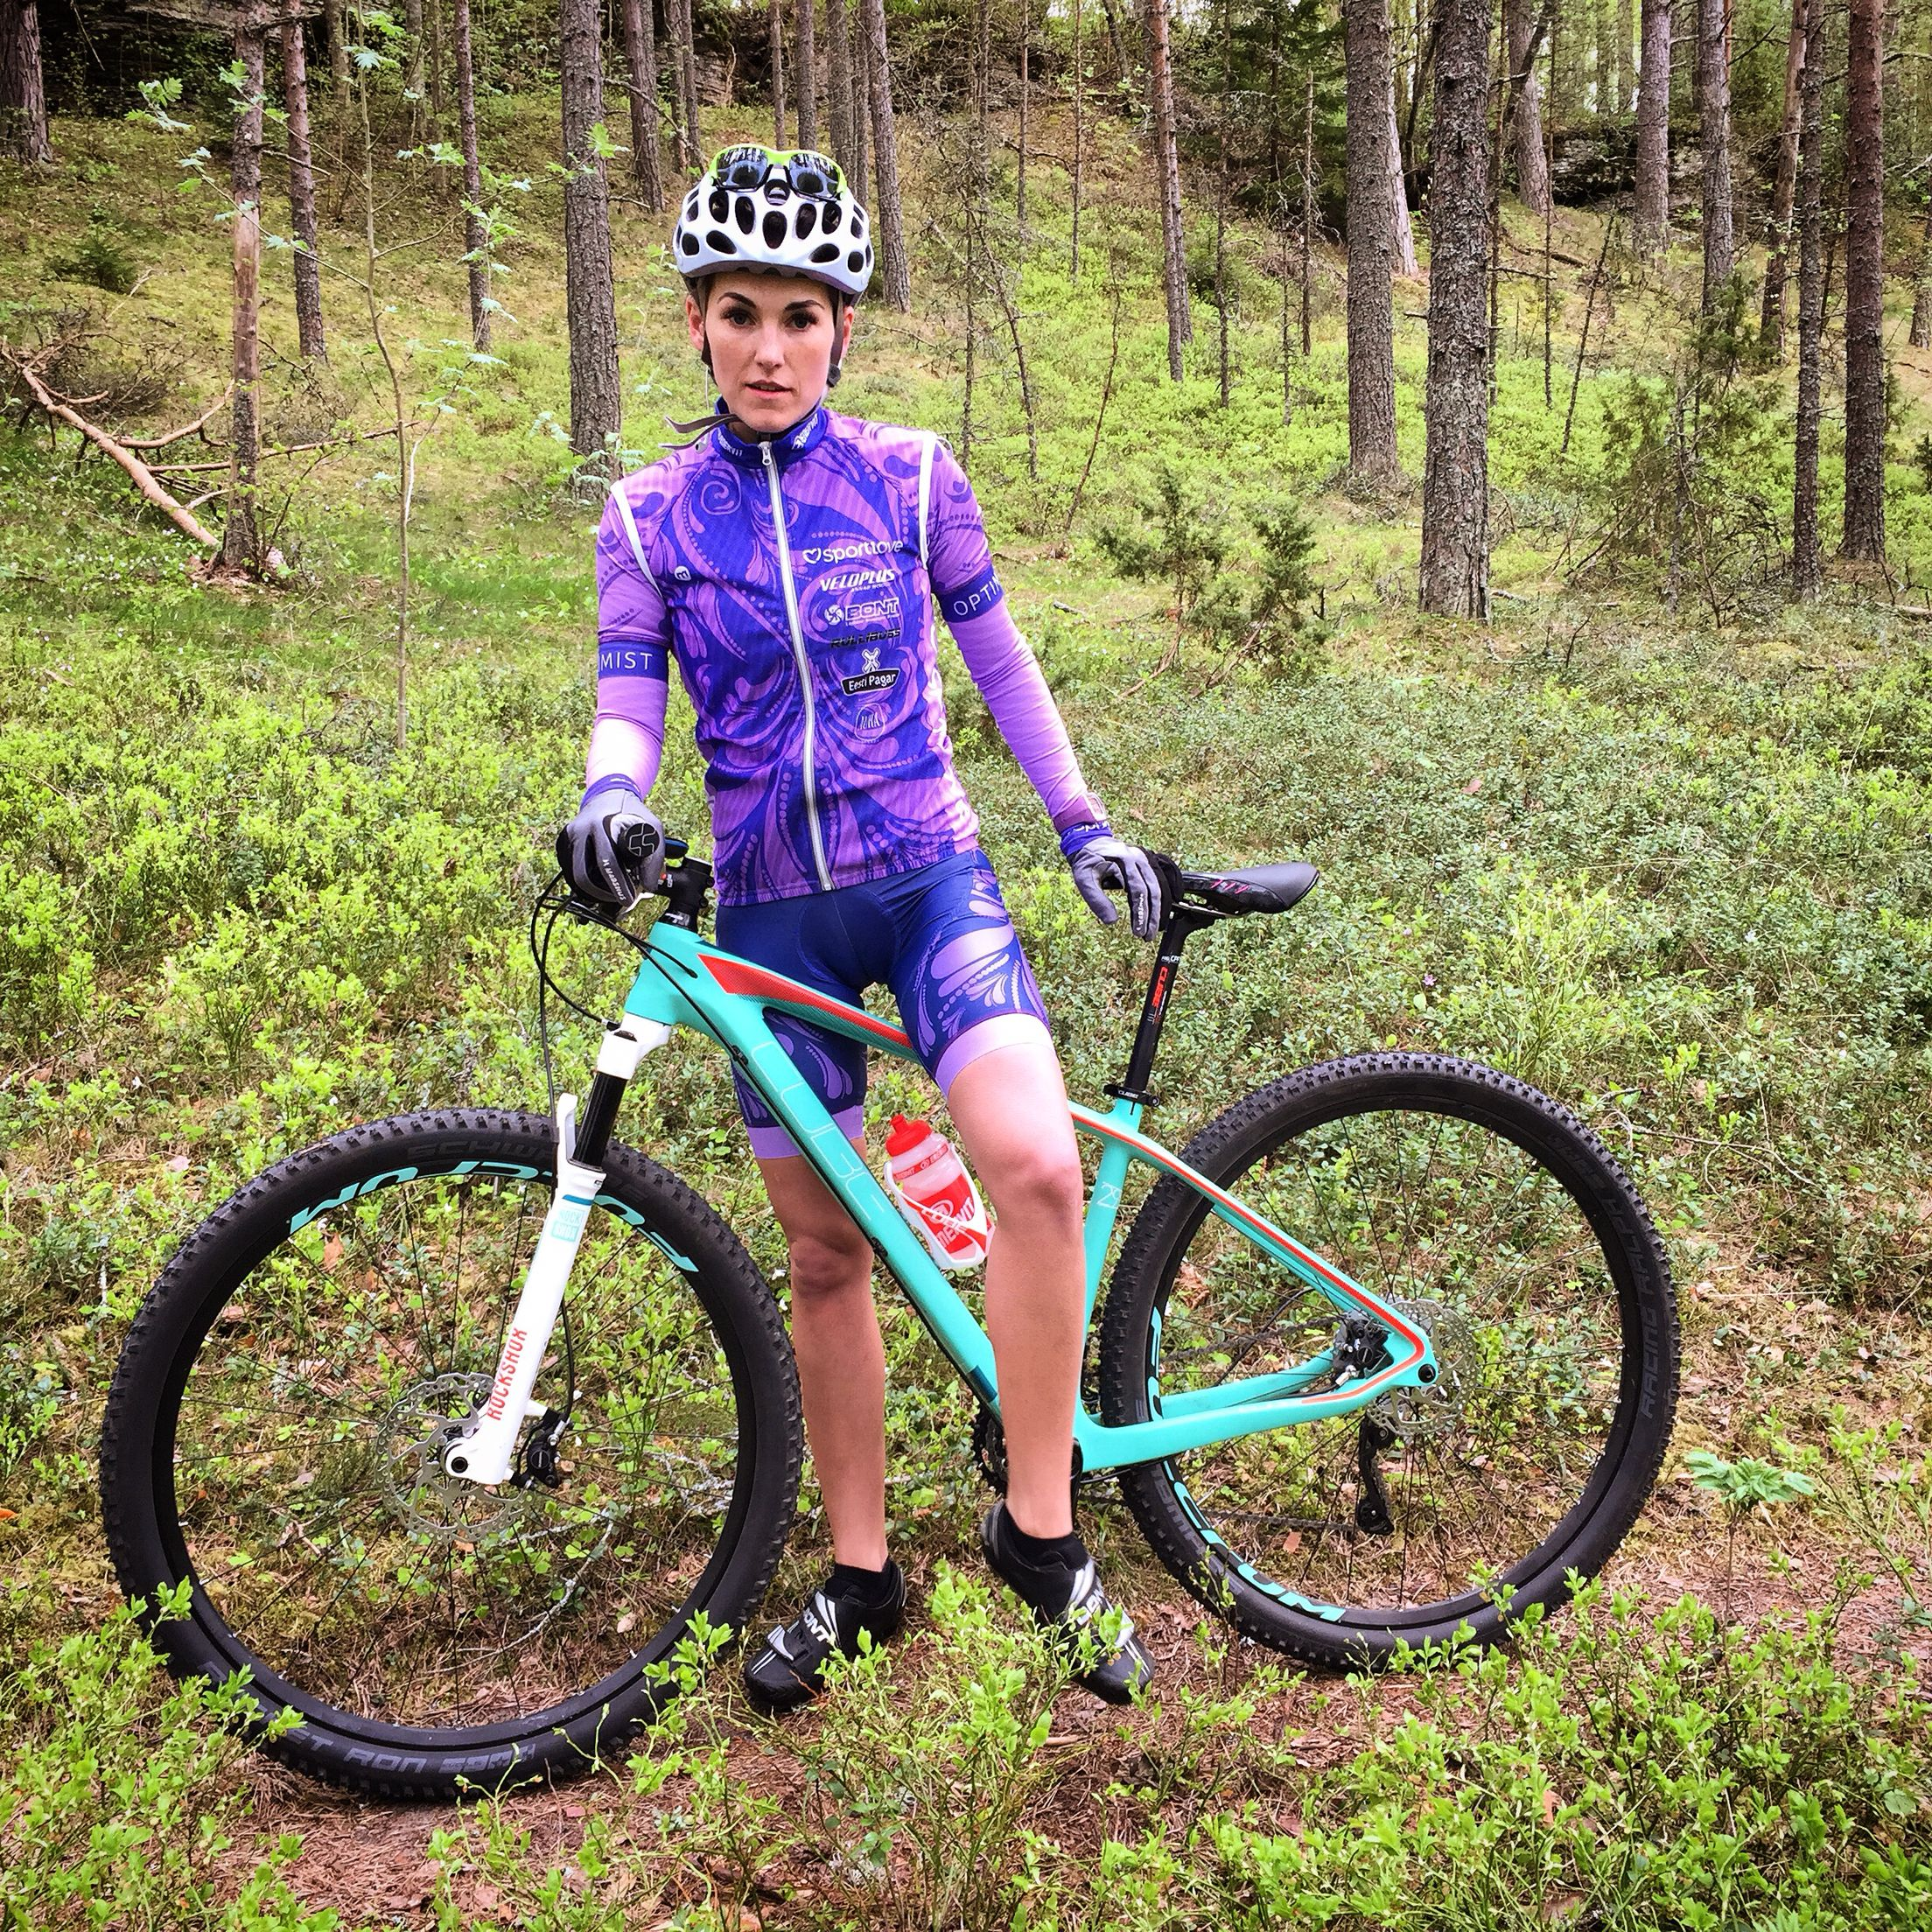 Woman cycling clothes - Sportlove design